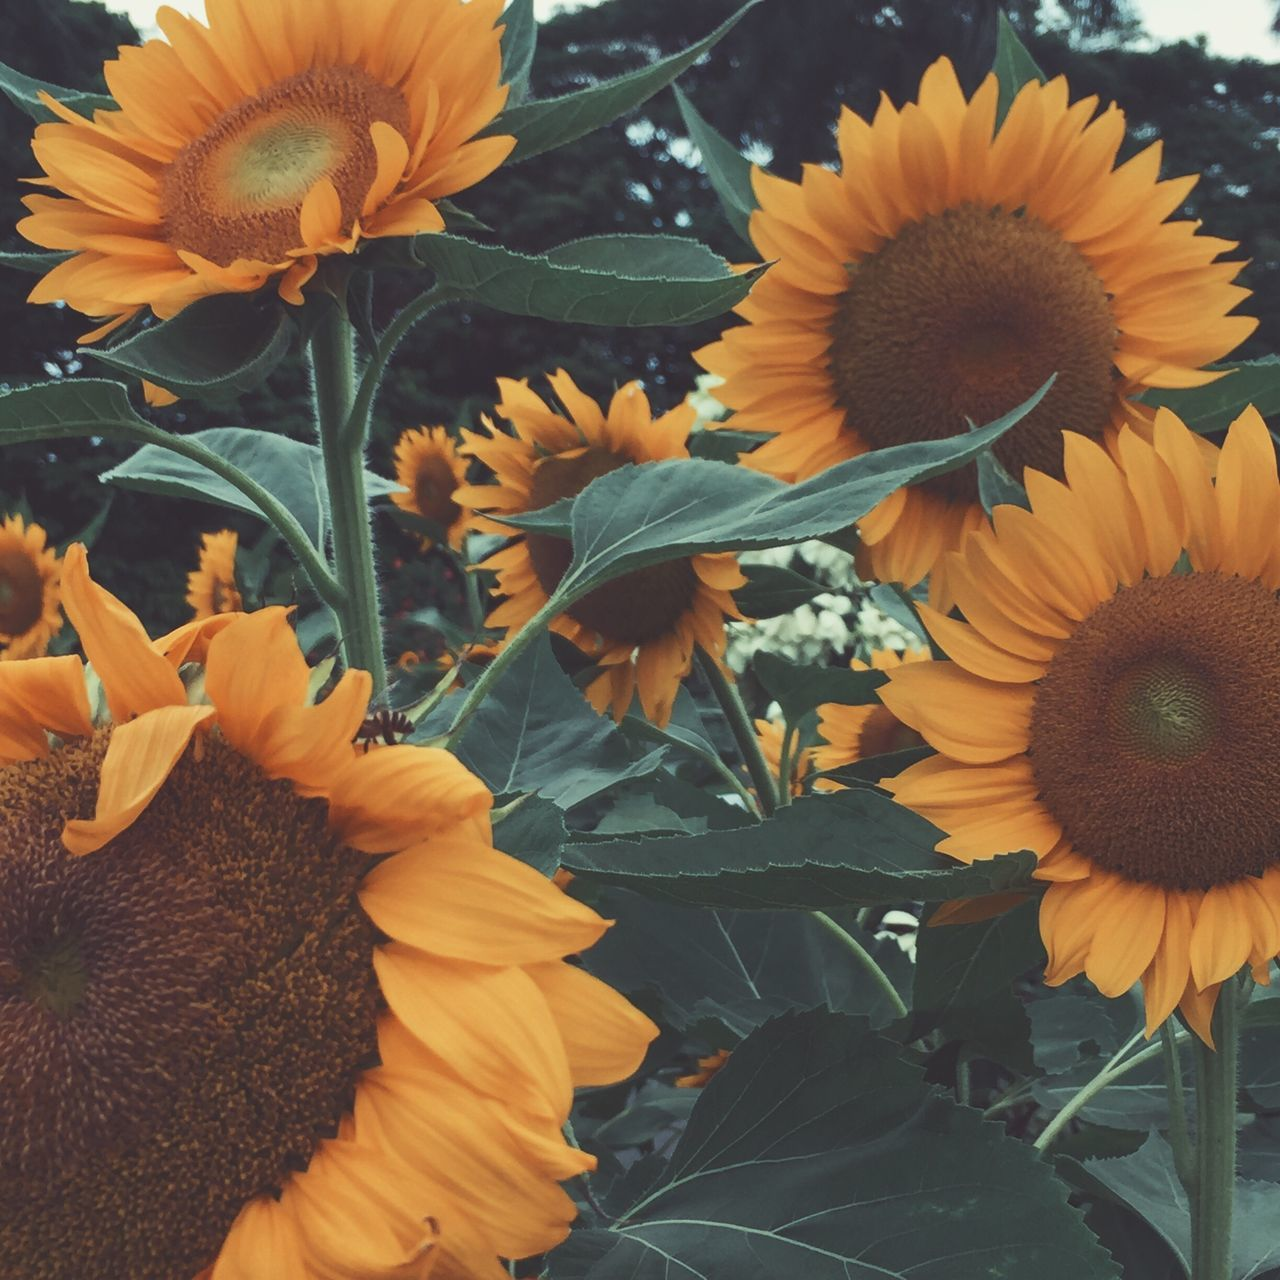 flower, fragility, petal, flower head, beauty in nature, freshness, nature, growth, plant, yellow, sunflower, blooming, no people, close-up, outdoors, day